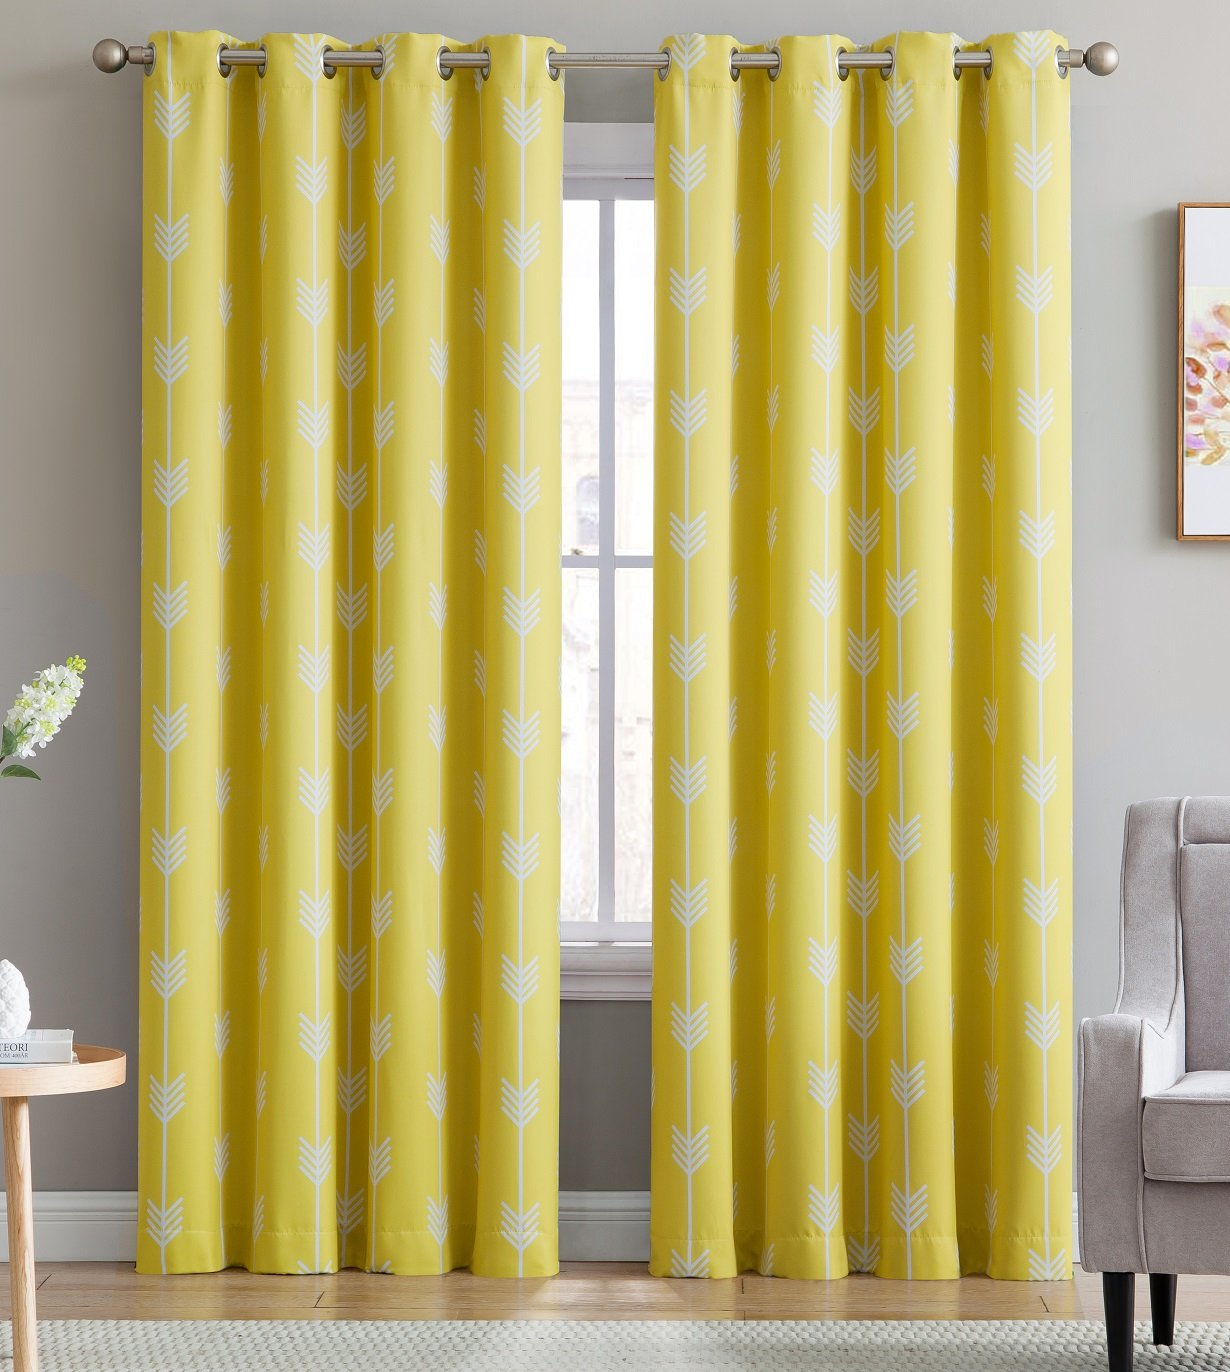 HLC.ME Arrow Printed Blackout Room Darkening Thermal Grommet Window Curtain Drape Panels for Living Room - Set of 2 - Bright Yellow